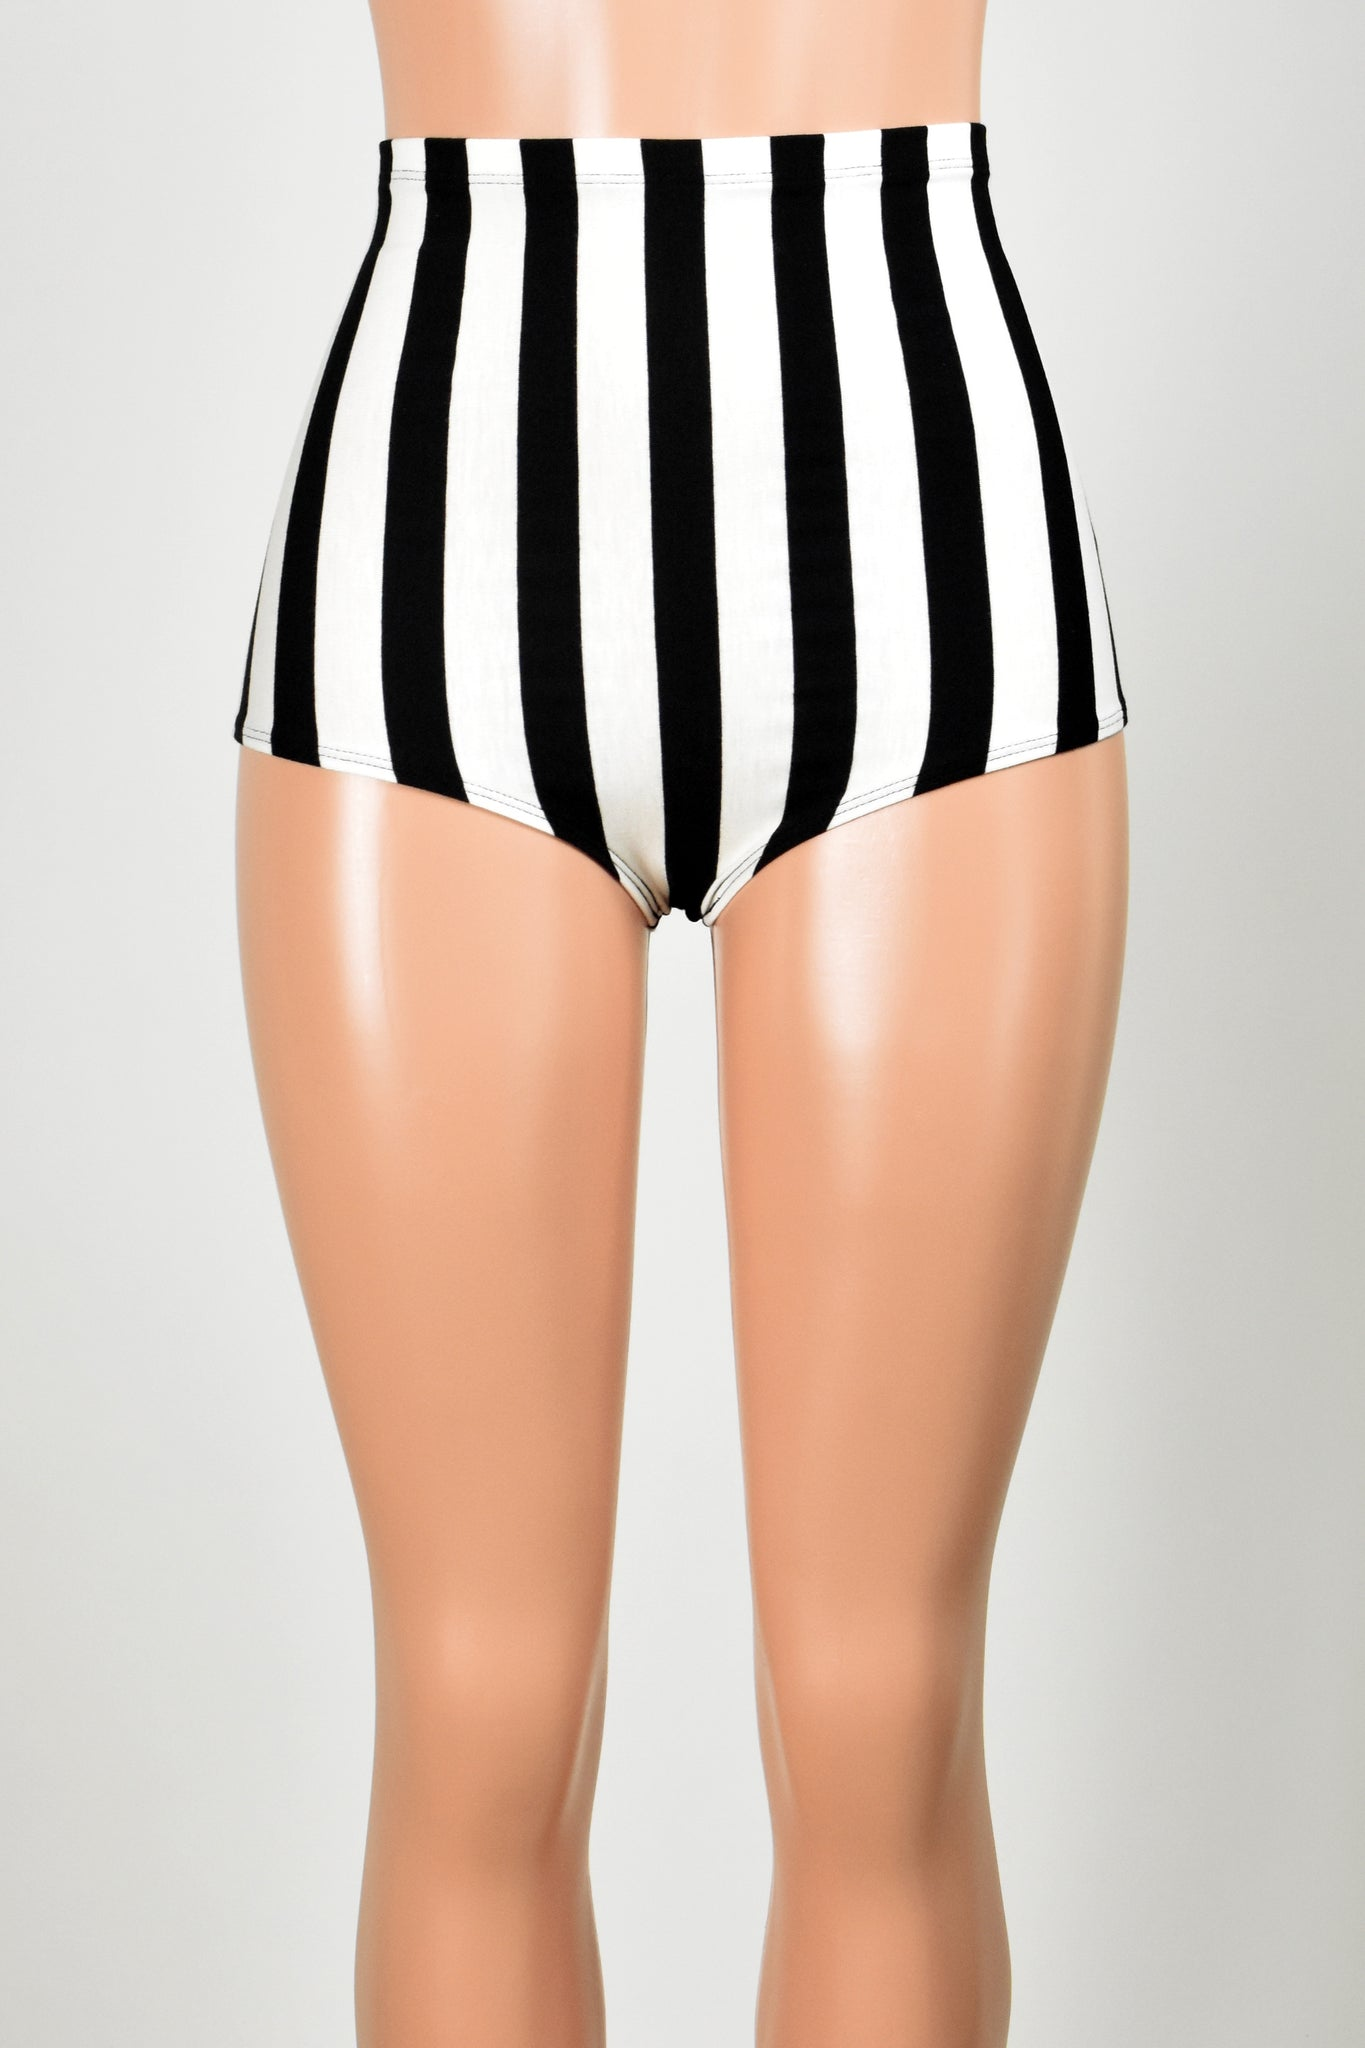 High-Waisted Black and White Vertical Striped Booty Shorts